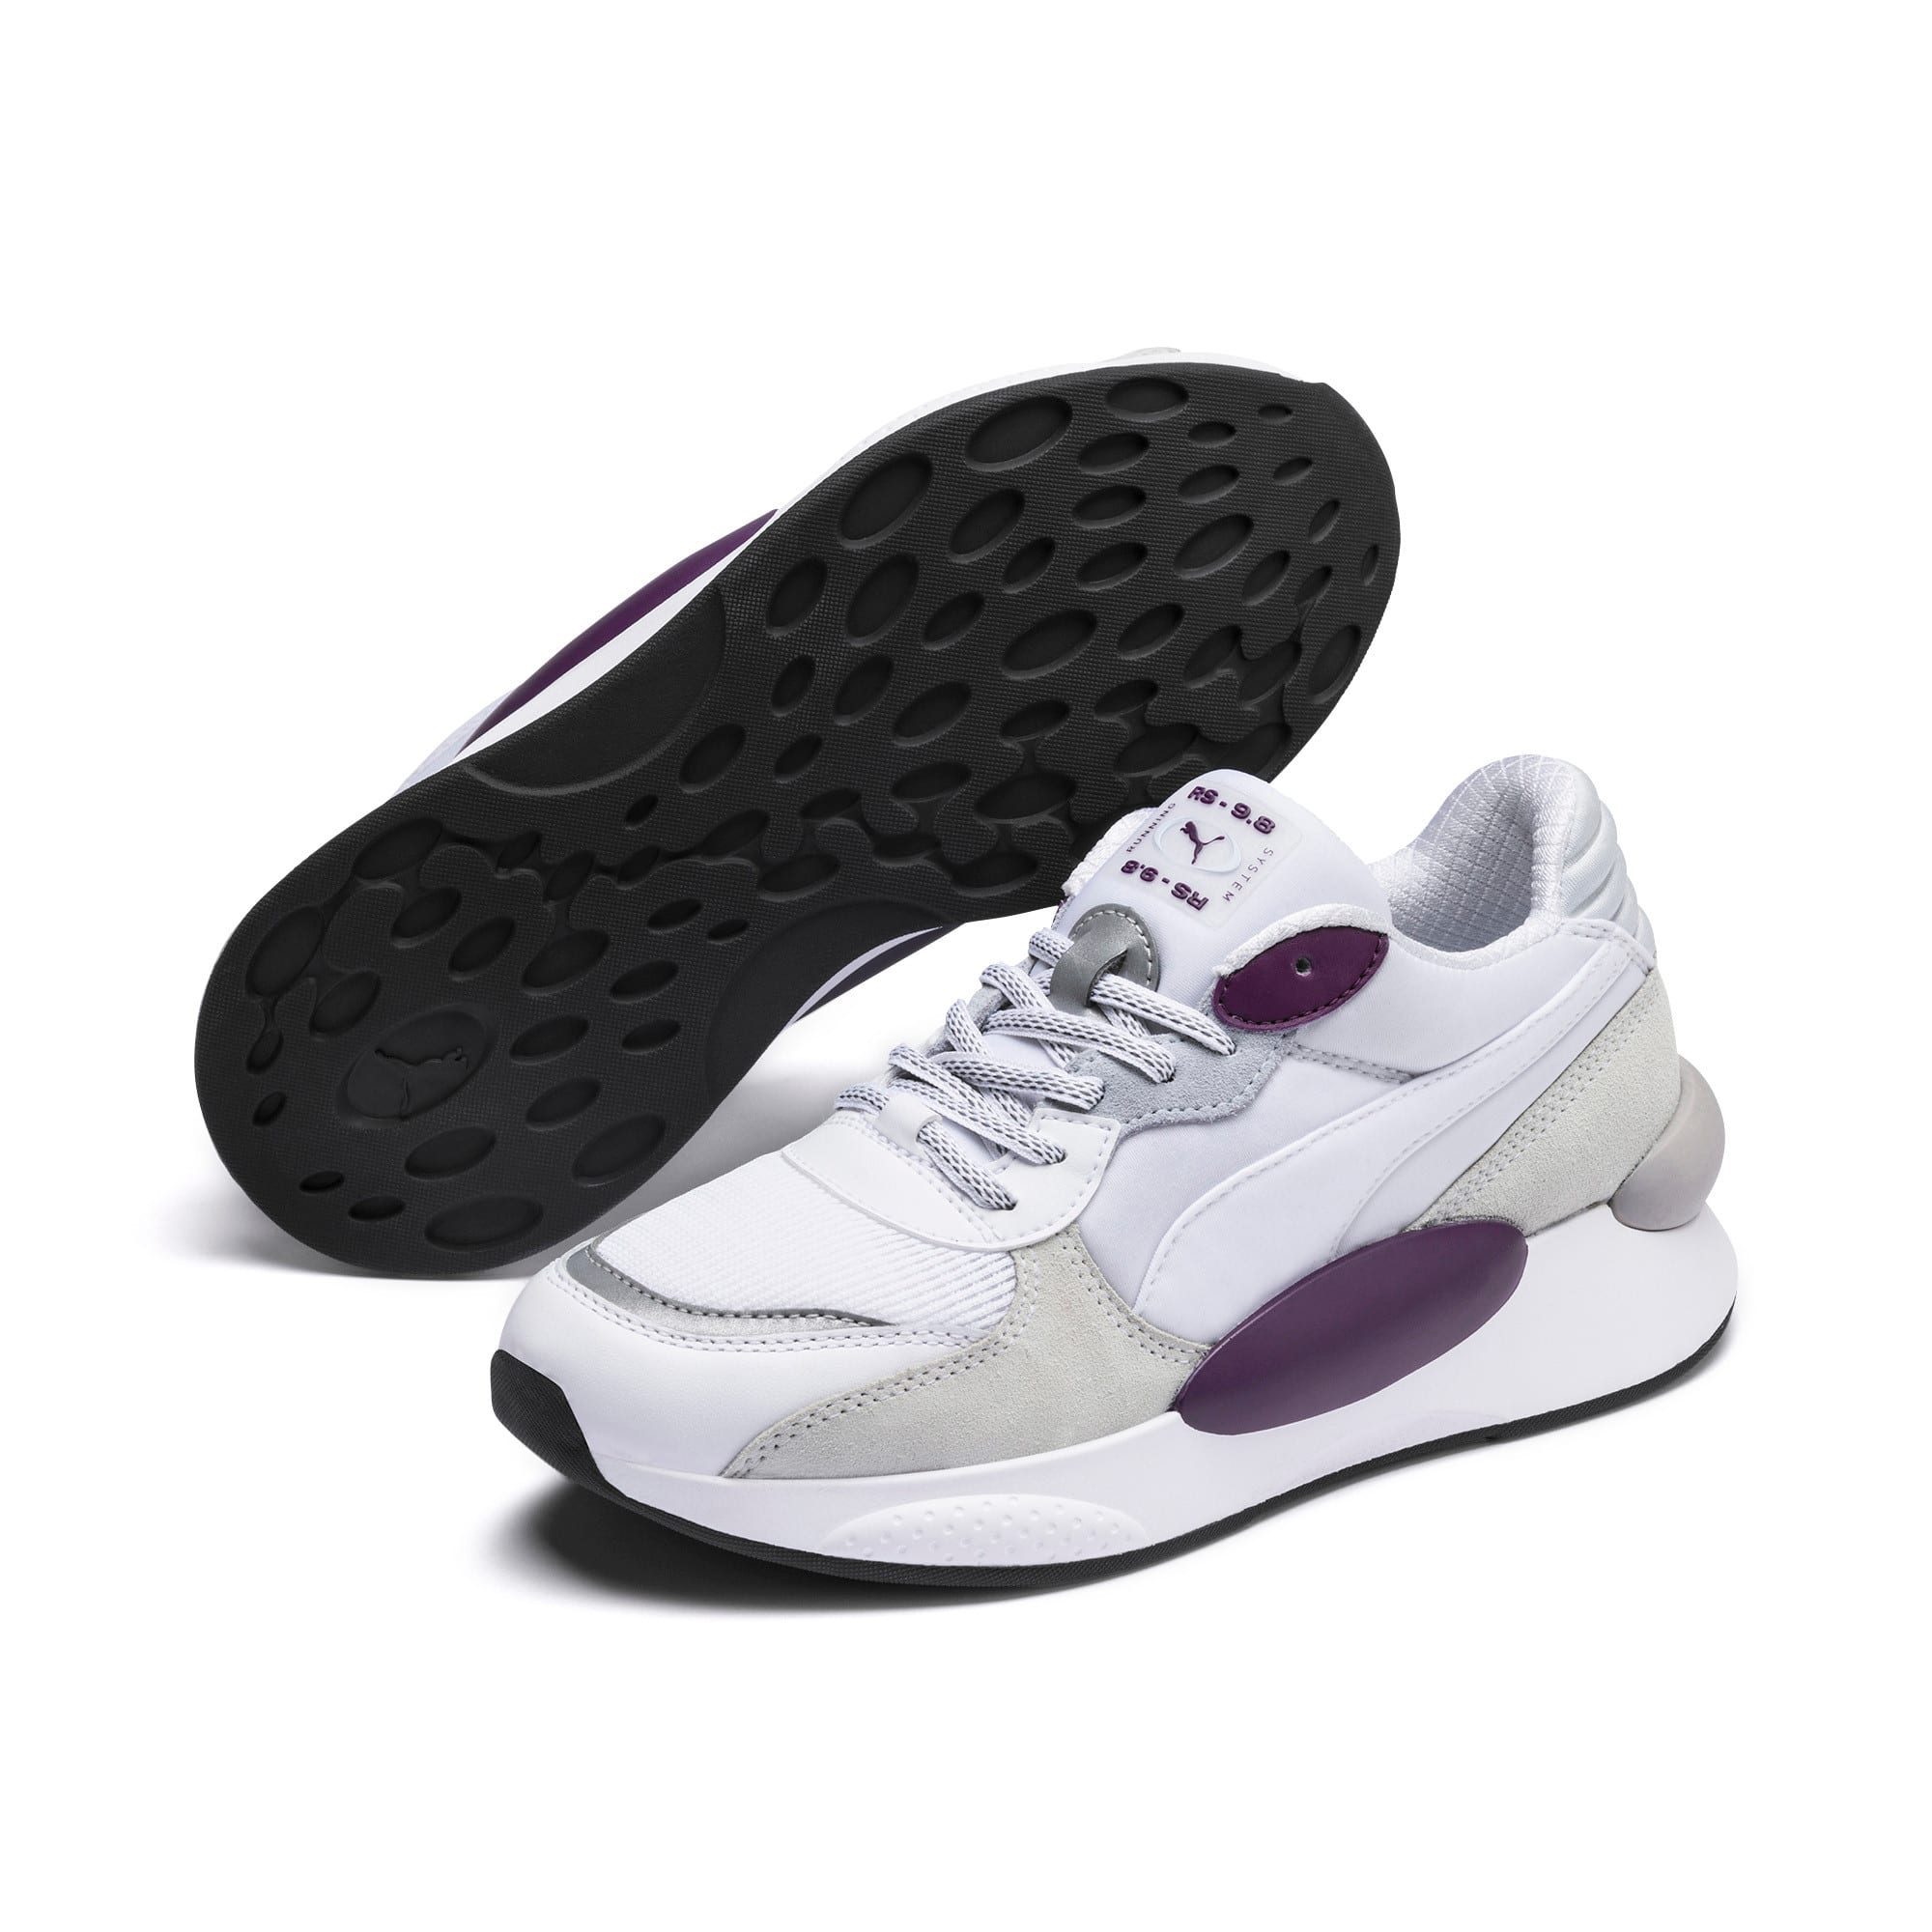 Thumbnail 3 of RS 9.8 Gravity Sneaker, Puma White-Plum Purple, medium